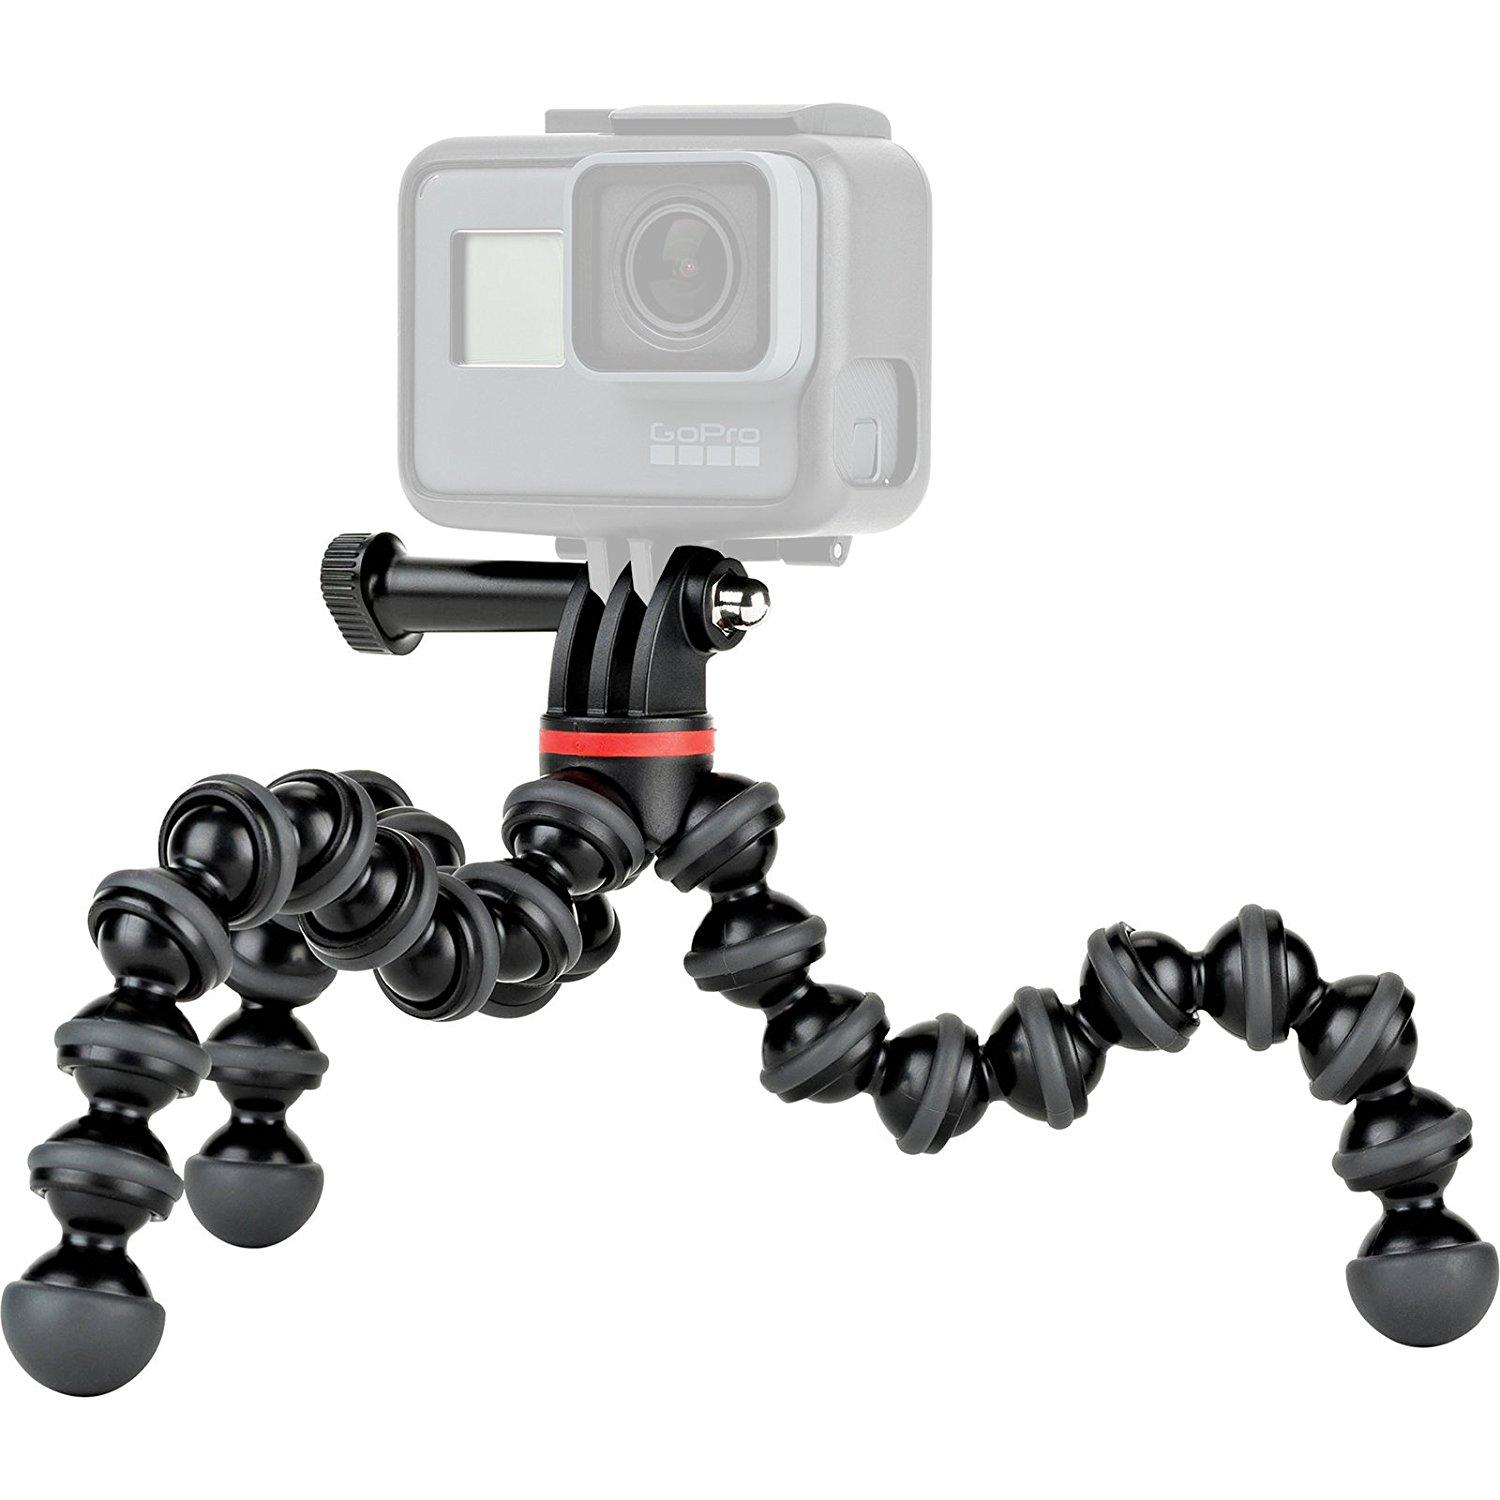 Buy Sell Cheapest Joby Jb01235 Gorillapod Best Quality Product Gorilla Pod 3k Kit Original 500 Action For Gopro And Cameras